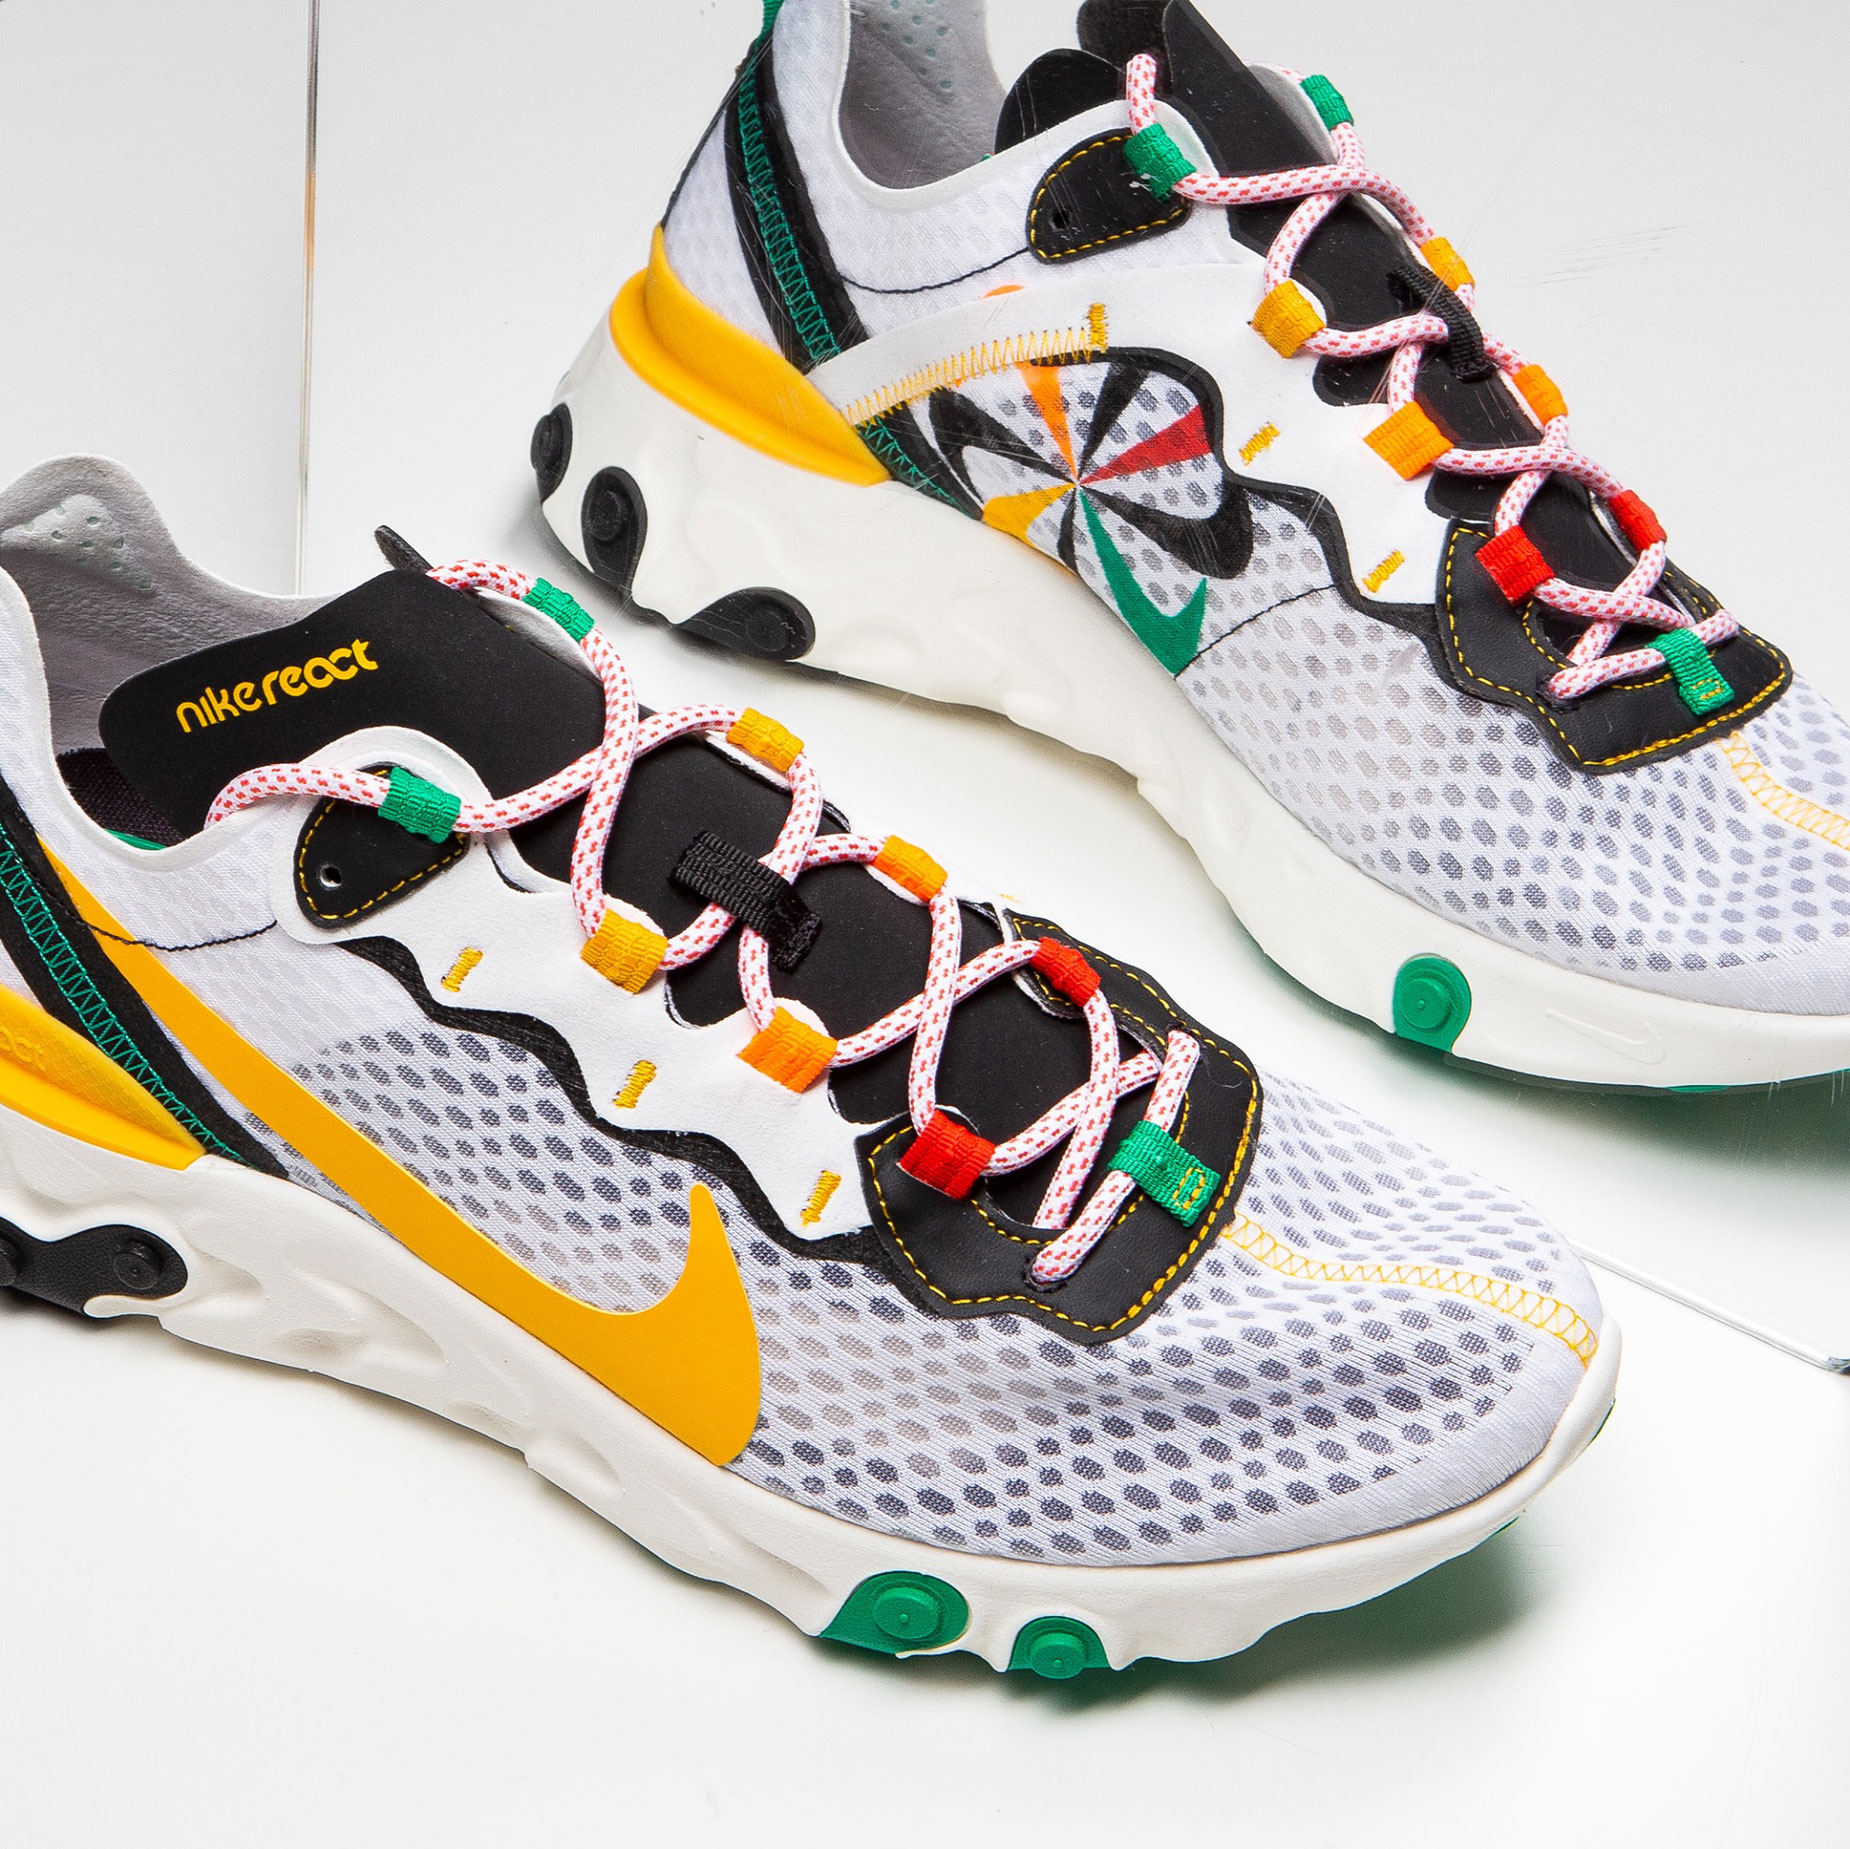 nike-sunburst-shoe-pack